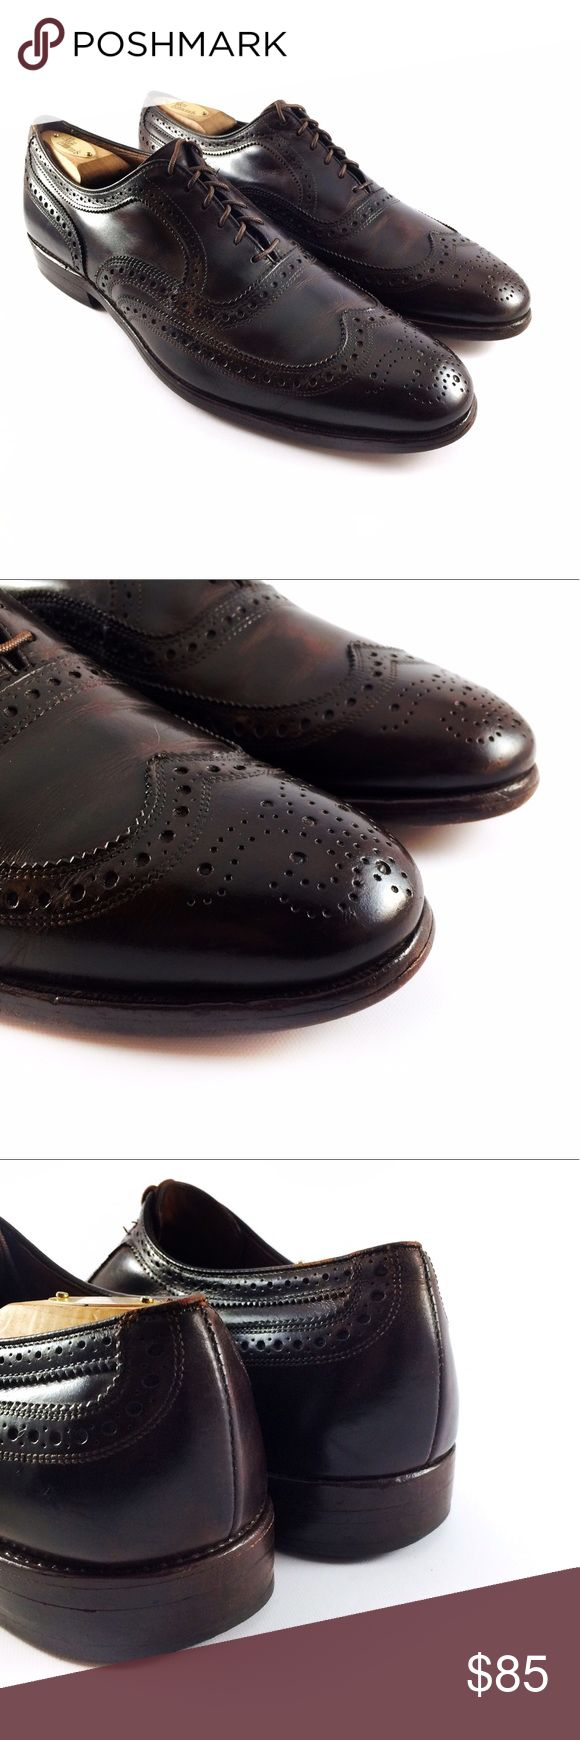 Allen Edmonds McAllister Dark Brown Wingtip Oxford Mens Allen Edmonds McAllister Dark Brown Perforated Wingtip Oxford Shoes. Size - 11 B. This item is in great condition and comes from a smoke free home. Allen Edmonds Shoes Oxfords & Derbys